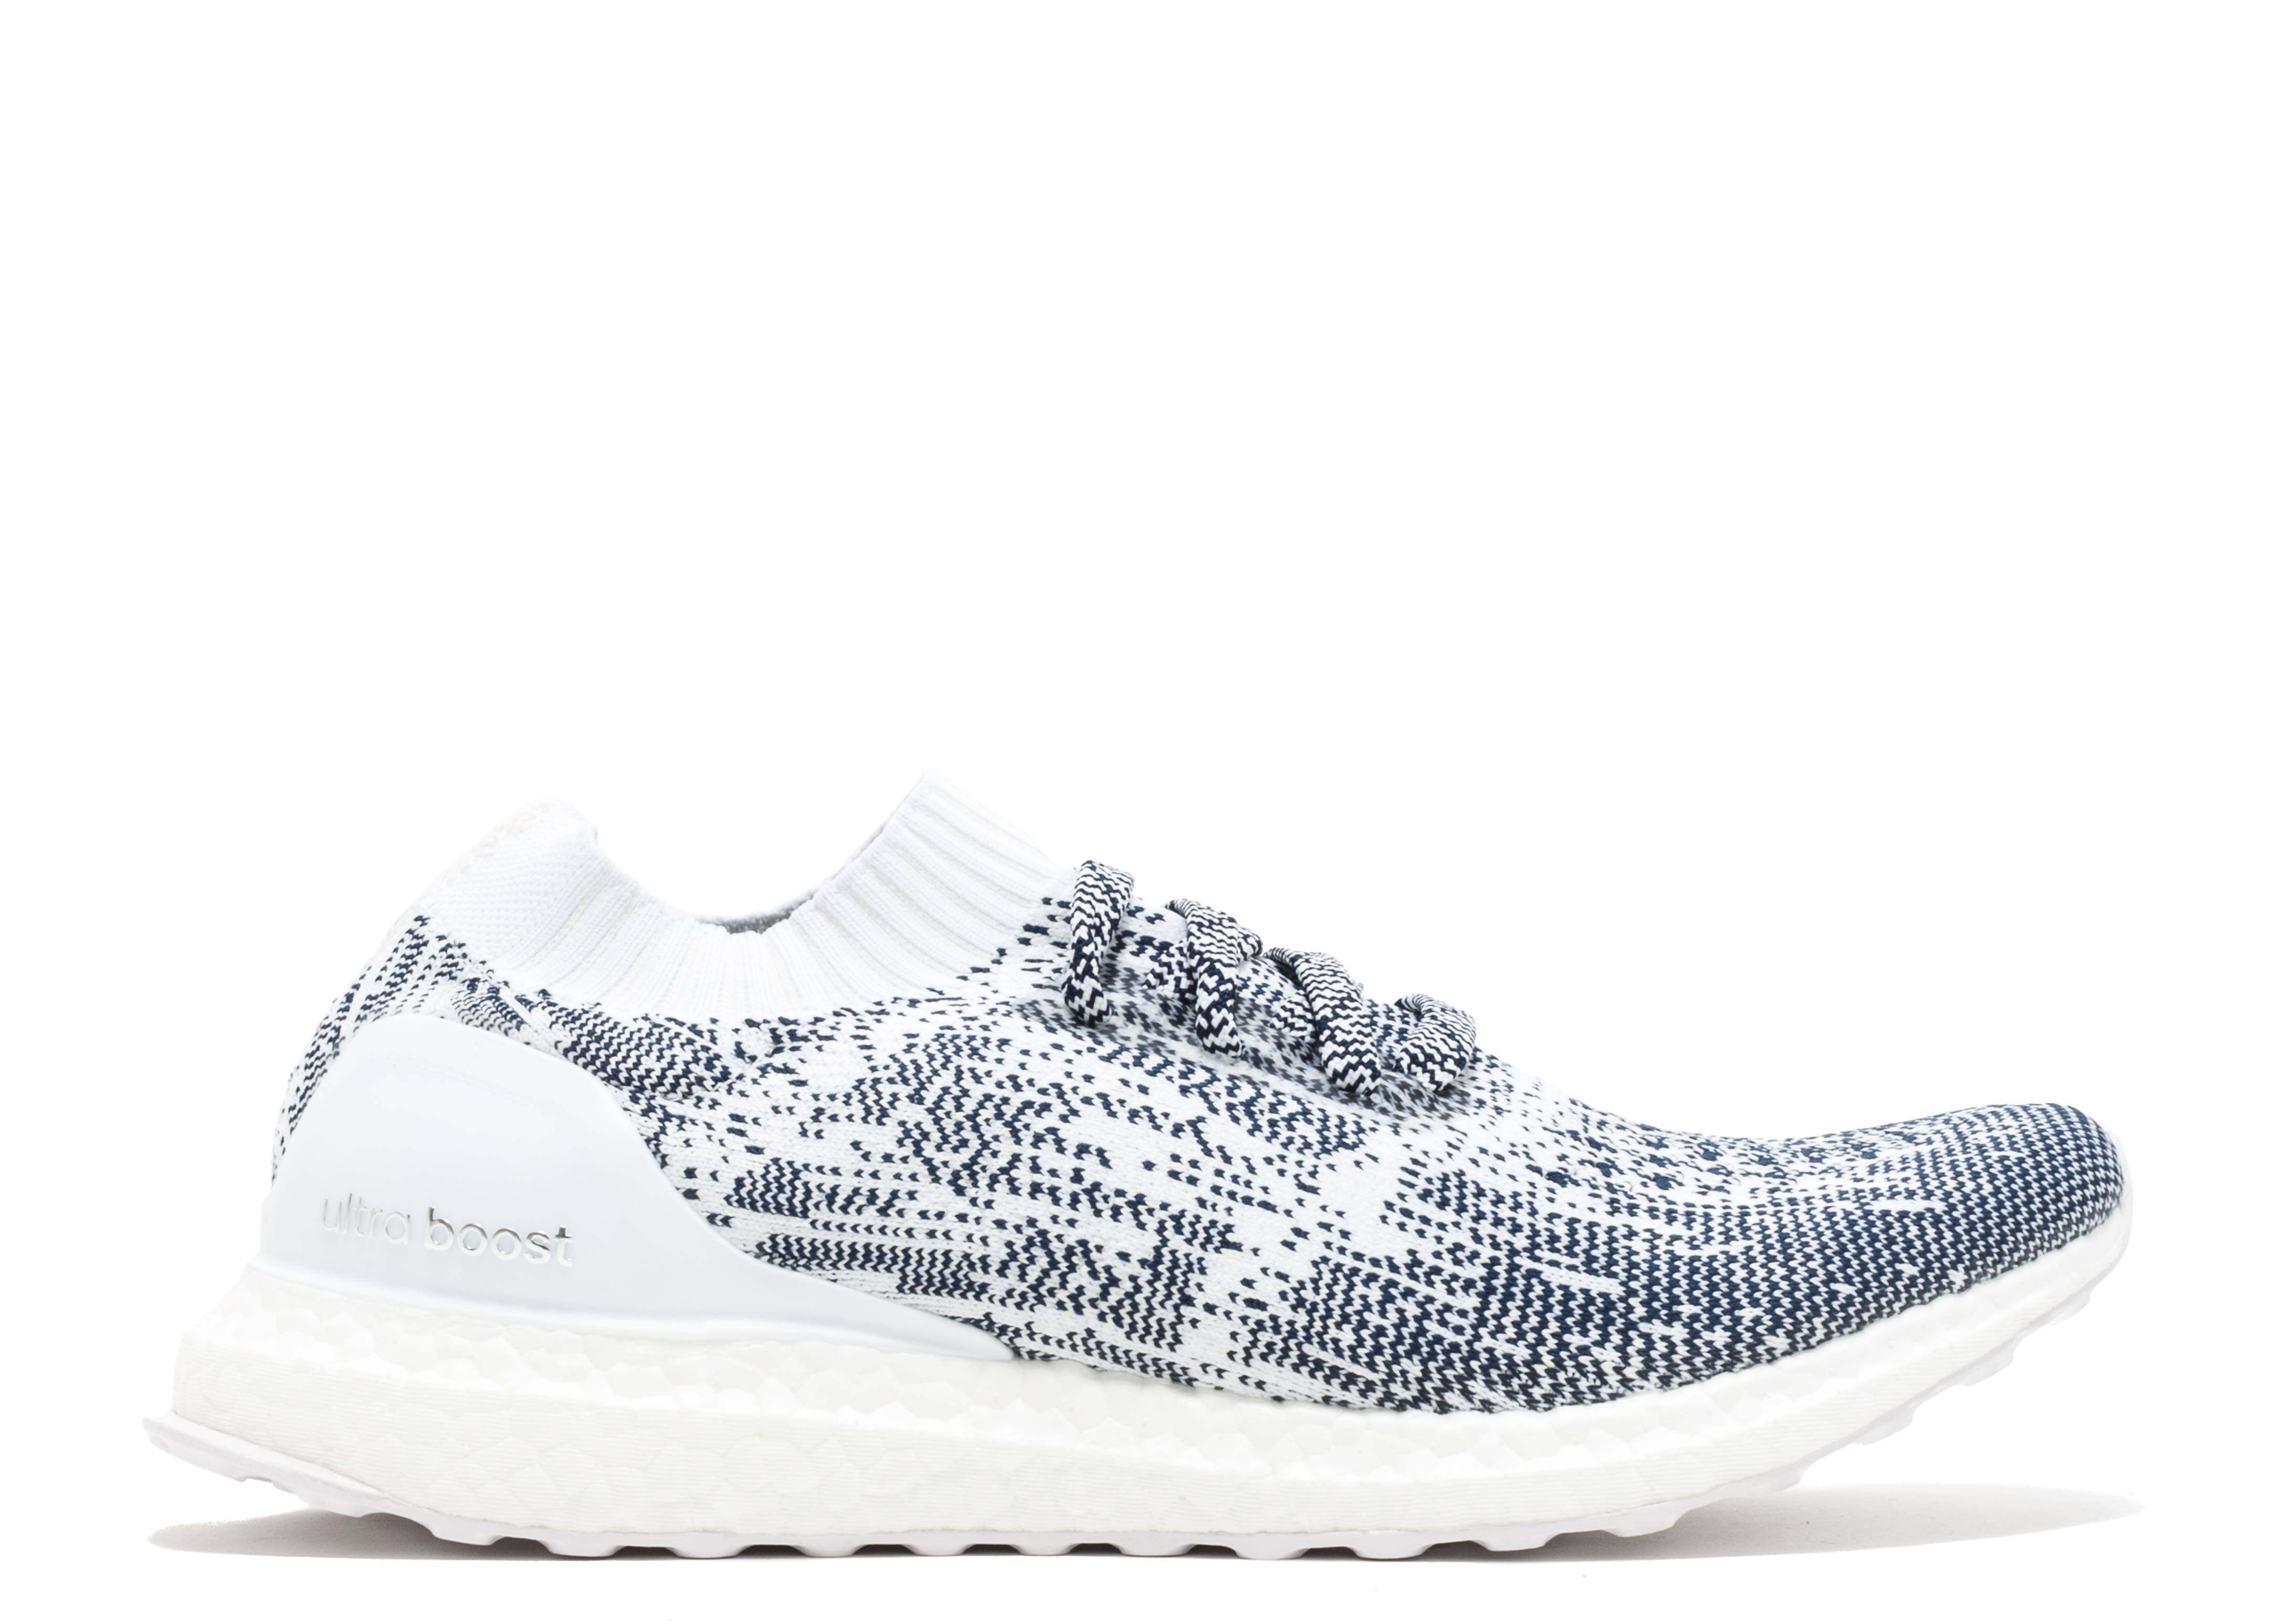 c4584d79dfdd8 adidas Ultra Boost Uncaged M adidas. ultraboost uncaged adidas Ultra Boost  Uncaged Oreo Black The ...